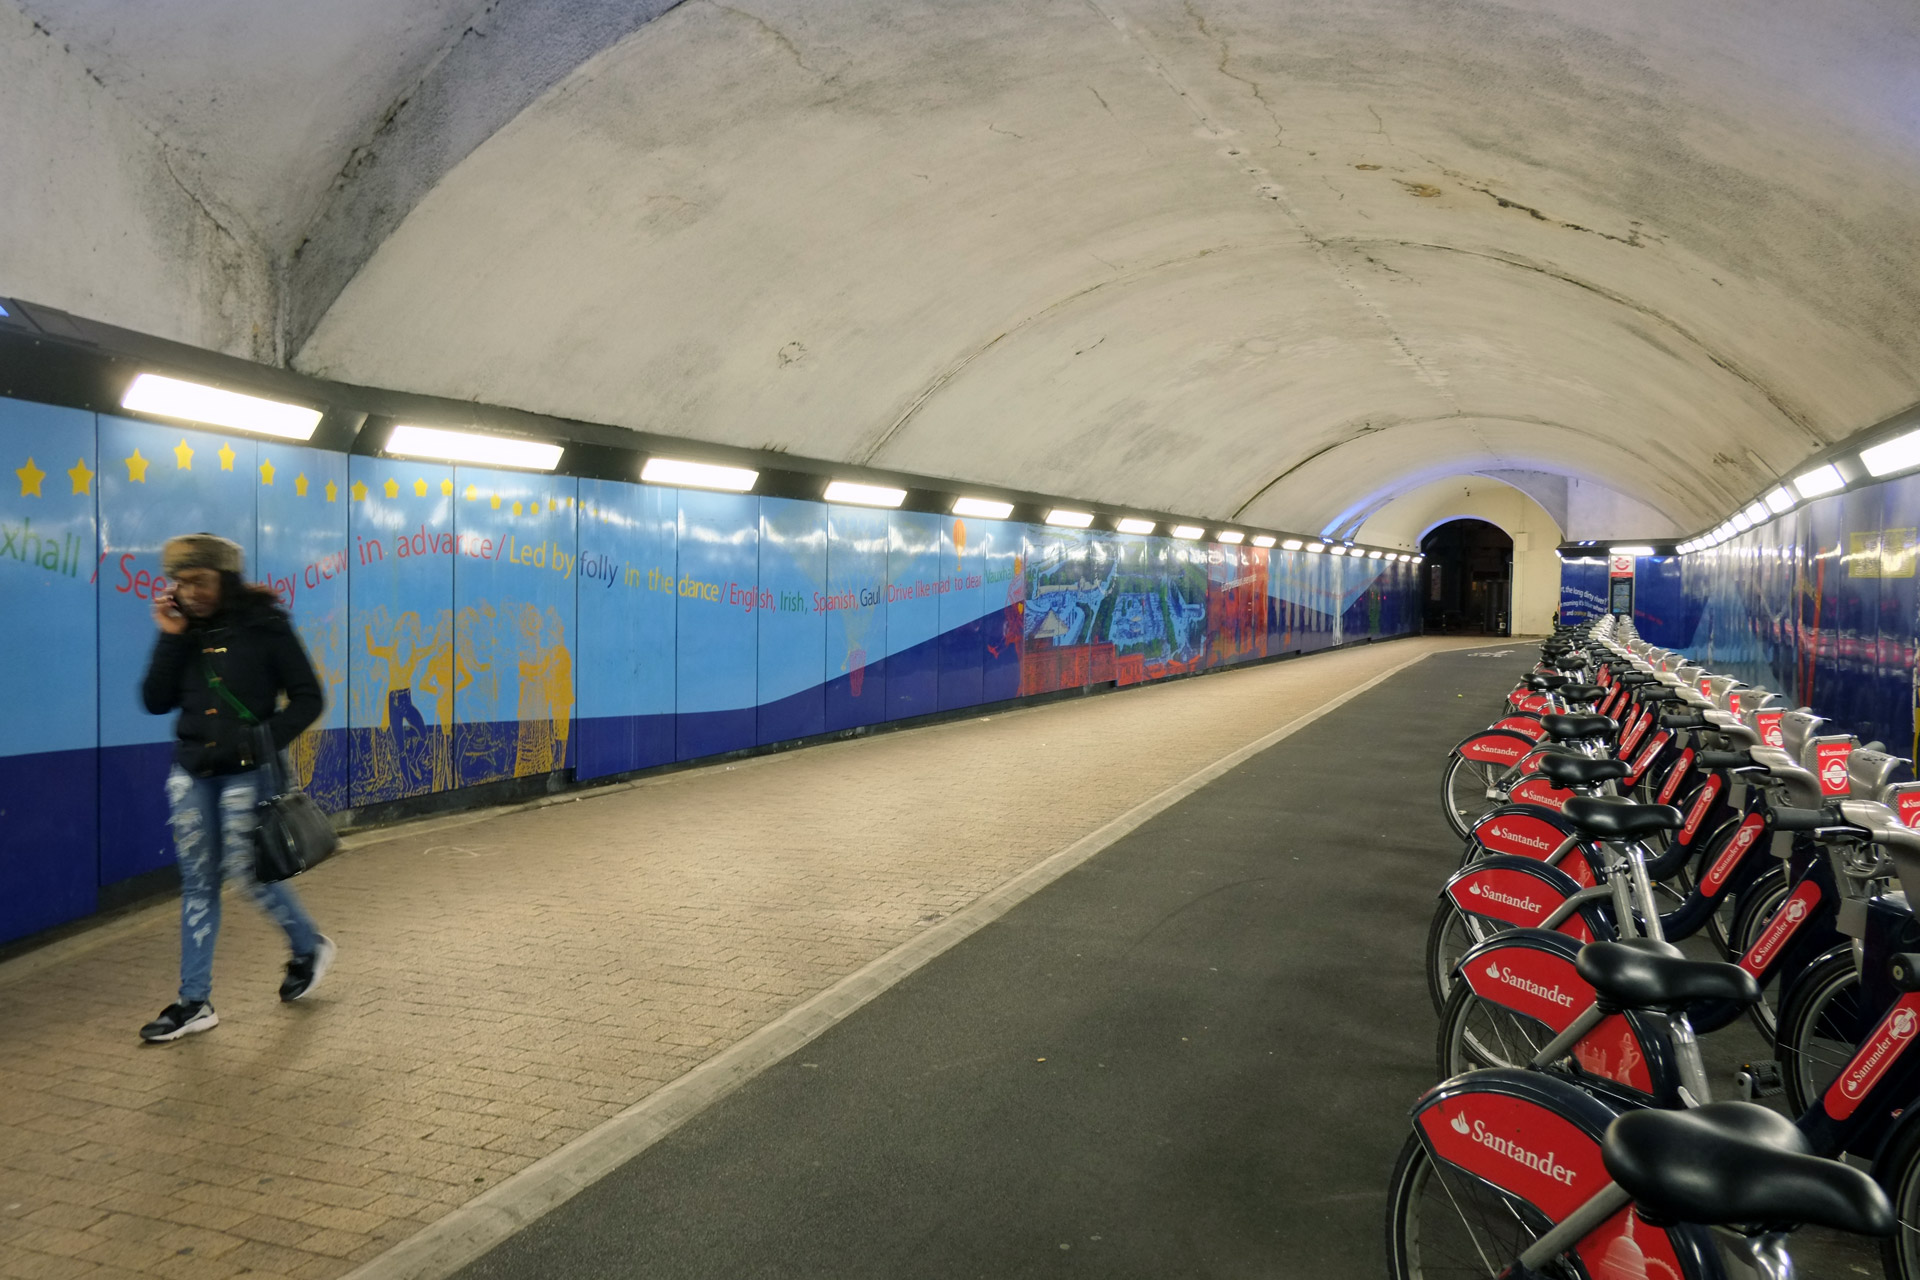 Tunnels with red bikes ten years after completion.